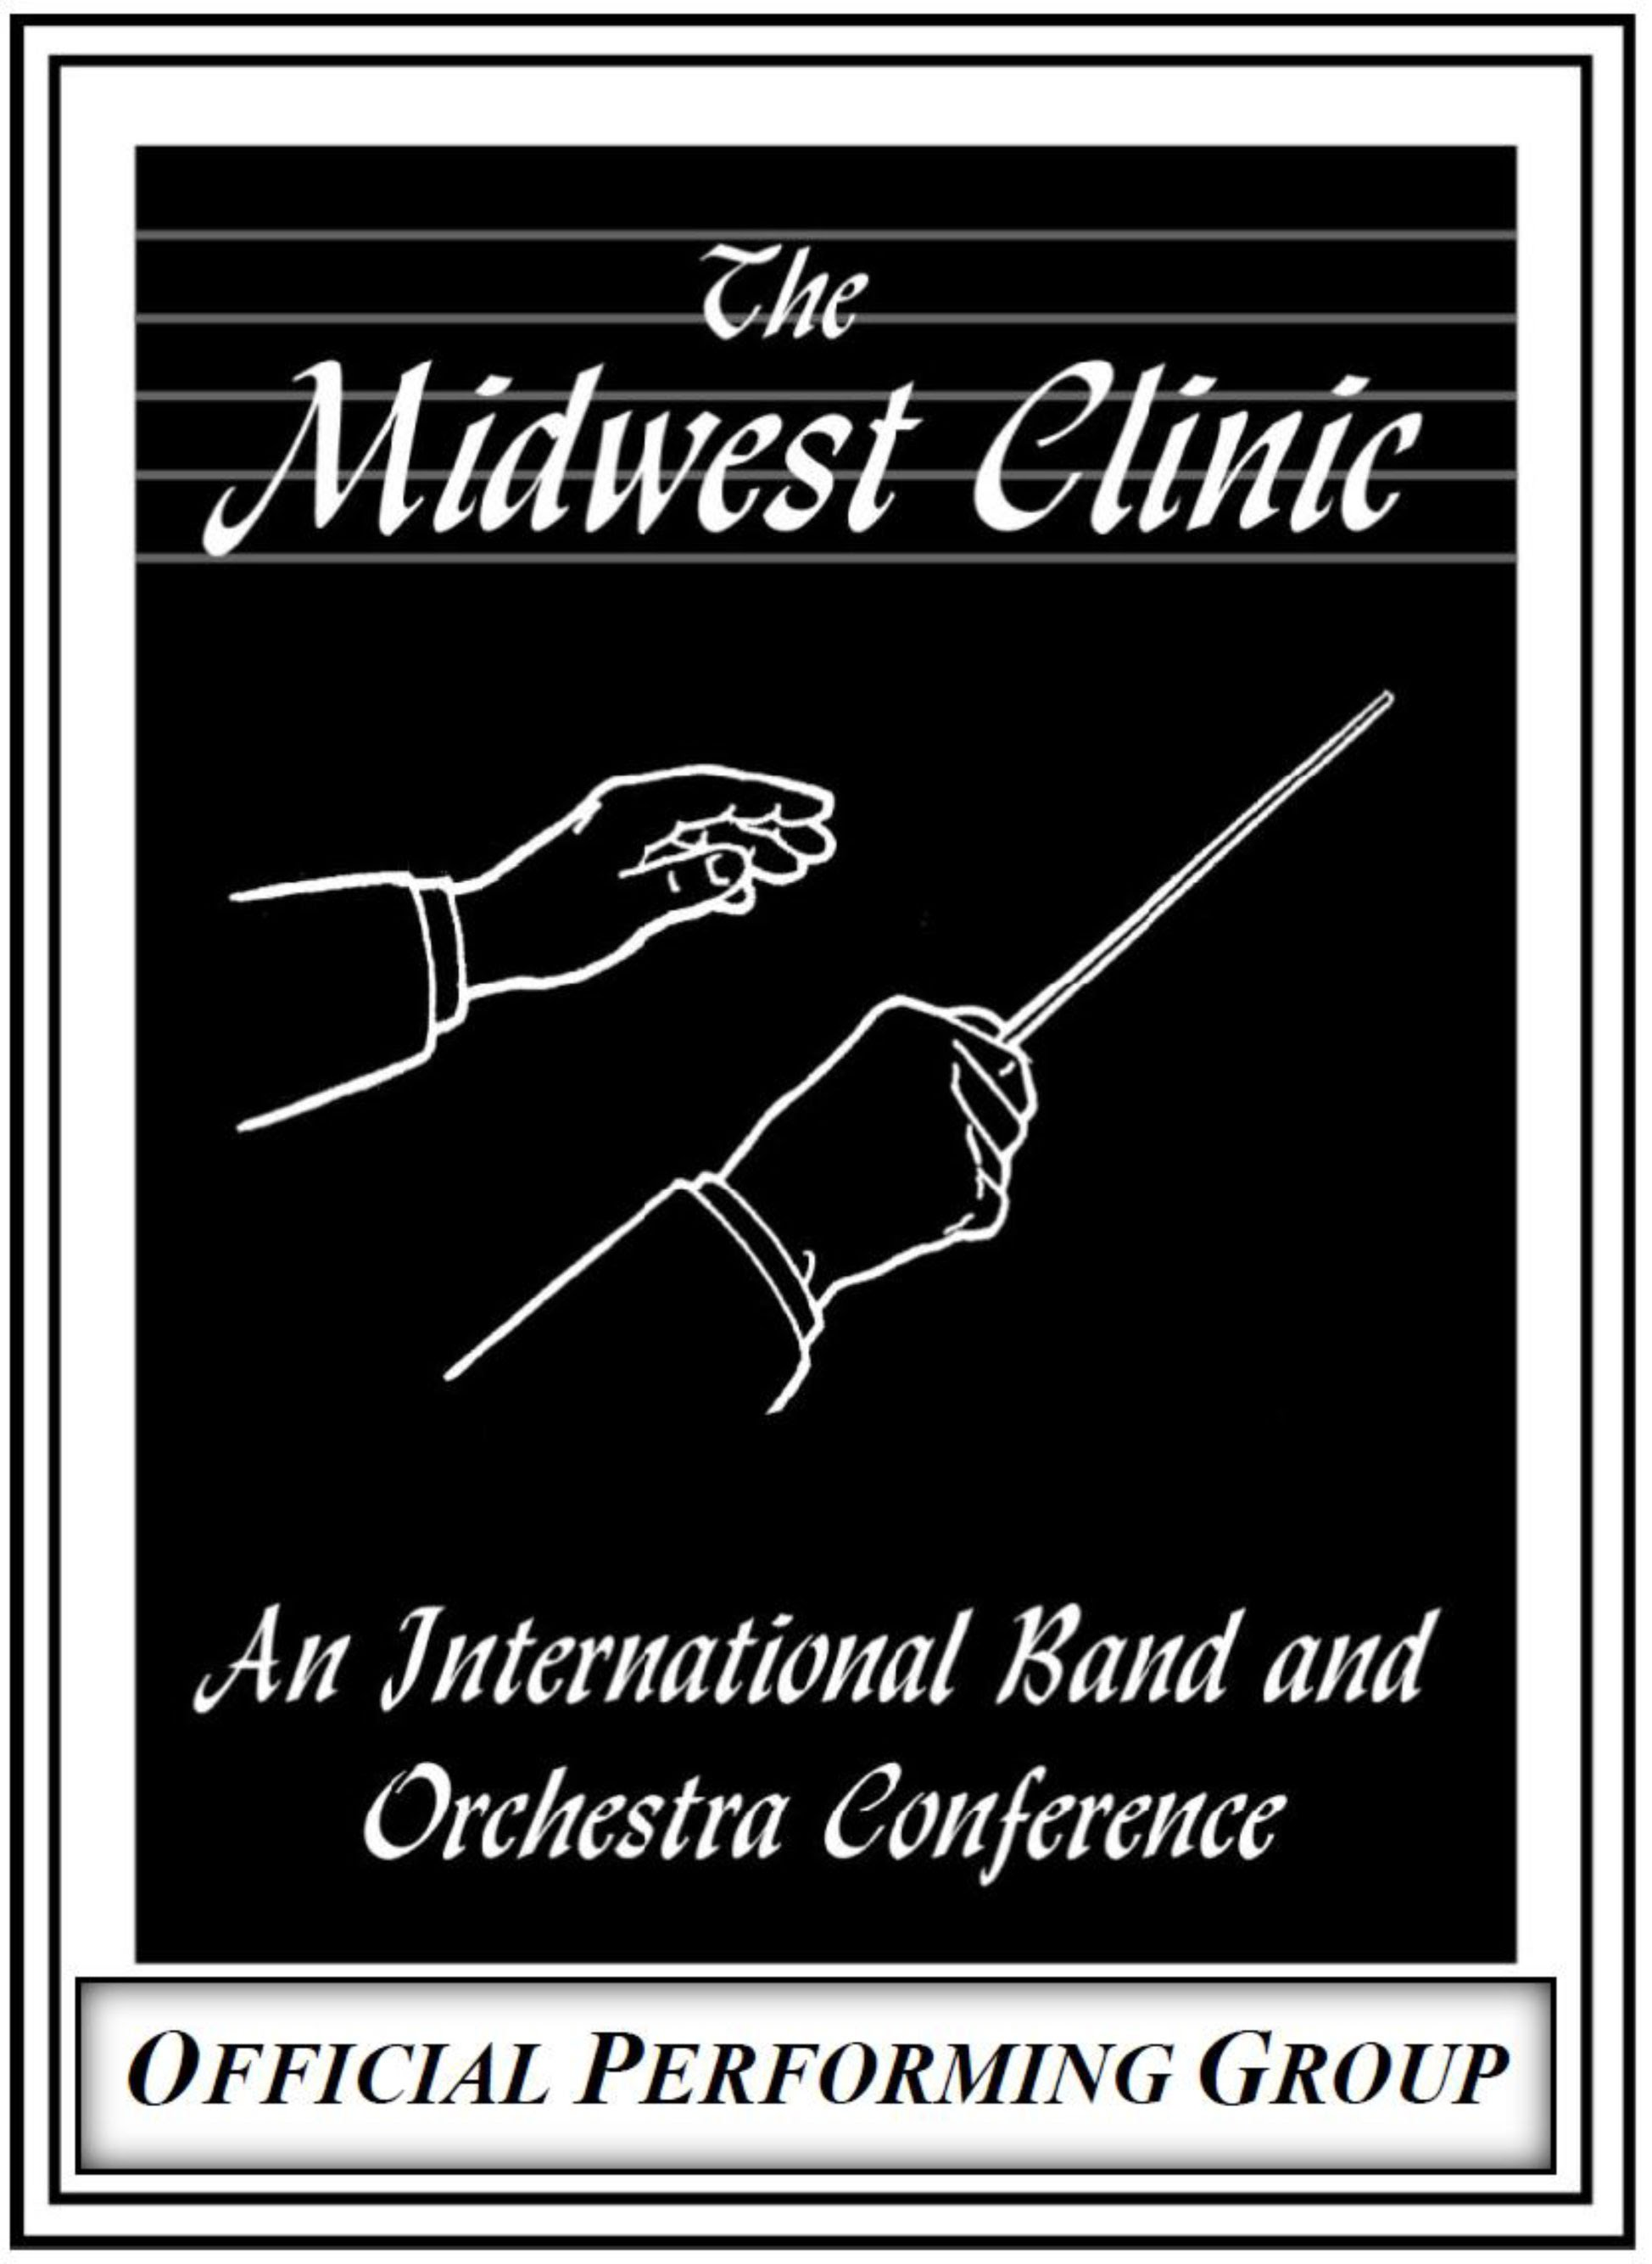 http://www.midwestclinic.org/midwest-clinic-performing-organization.aspx?gid=2820&pyear=2015